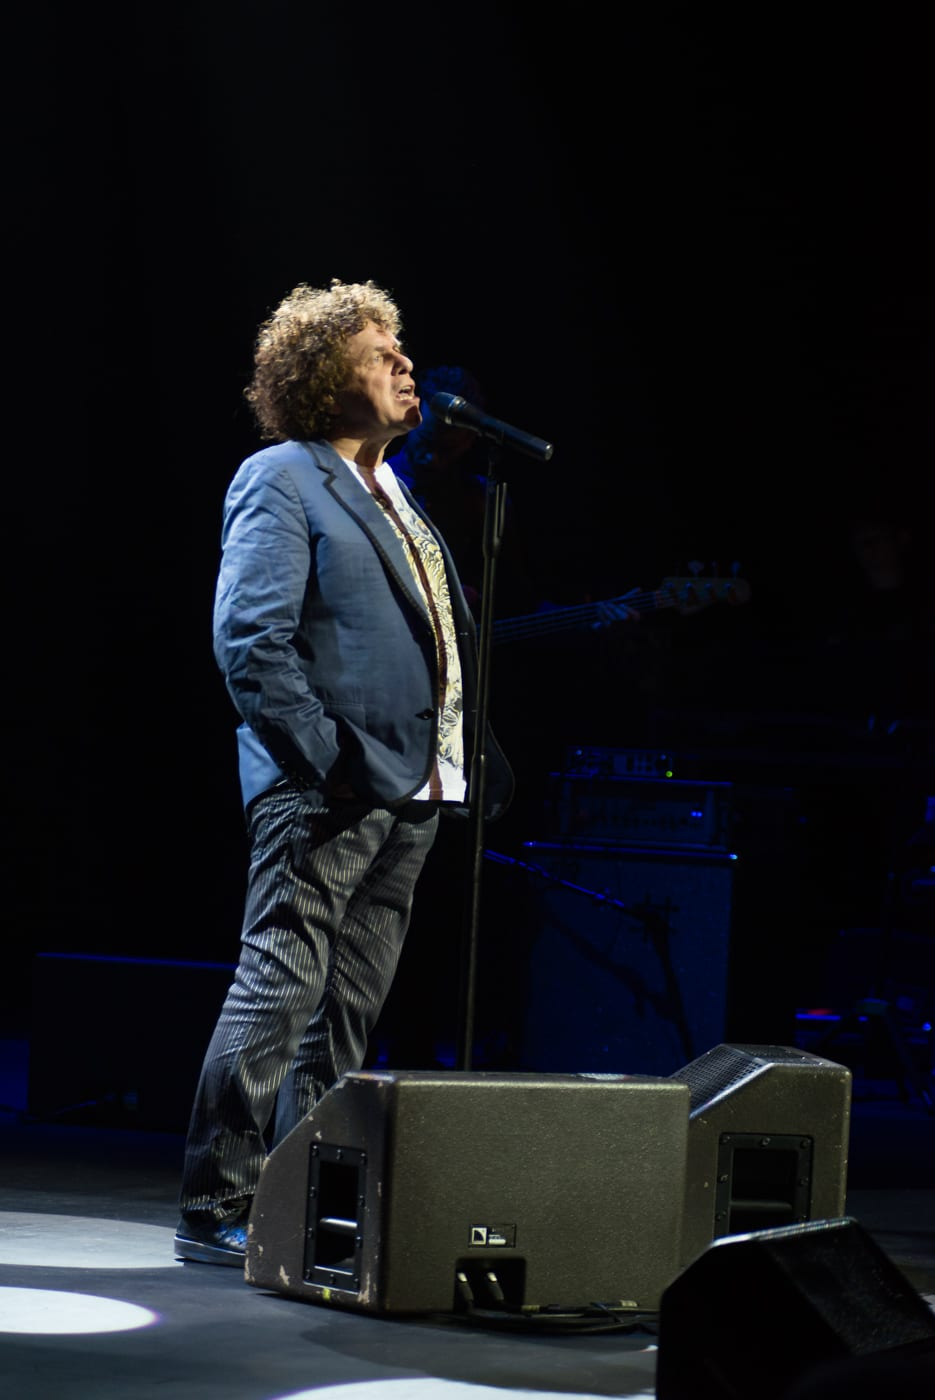 Leo Sayer at Bord Gais Energy Theatre by Sean Smyth (16-10-15) (51 of 129)